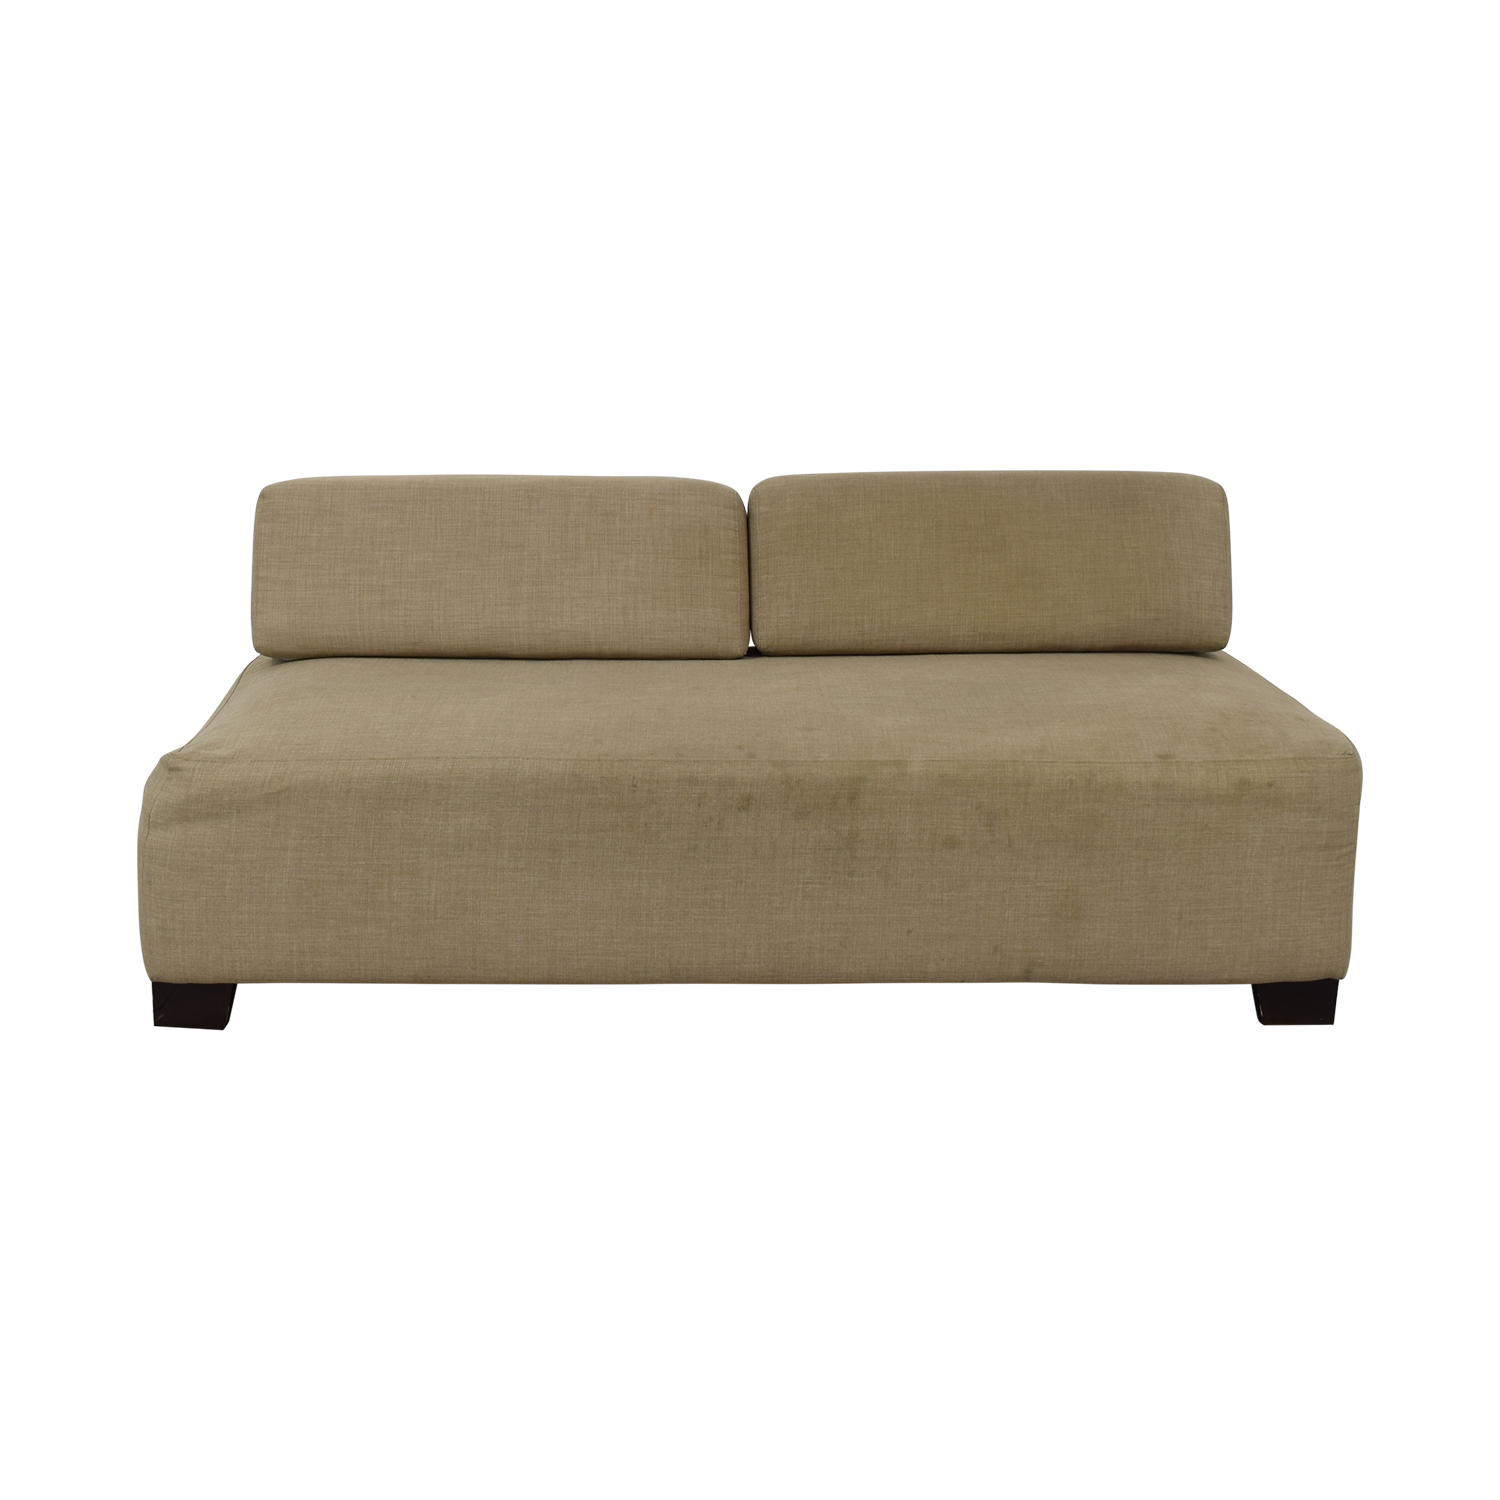 Cort Cort Fabric Sofa for sale